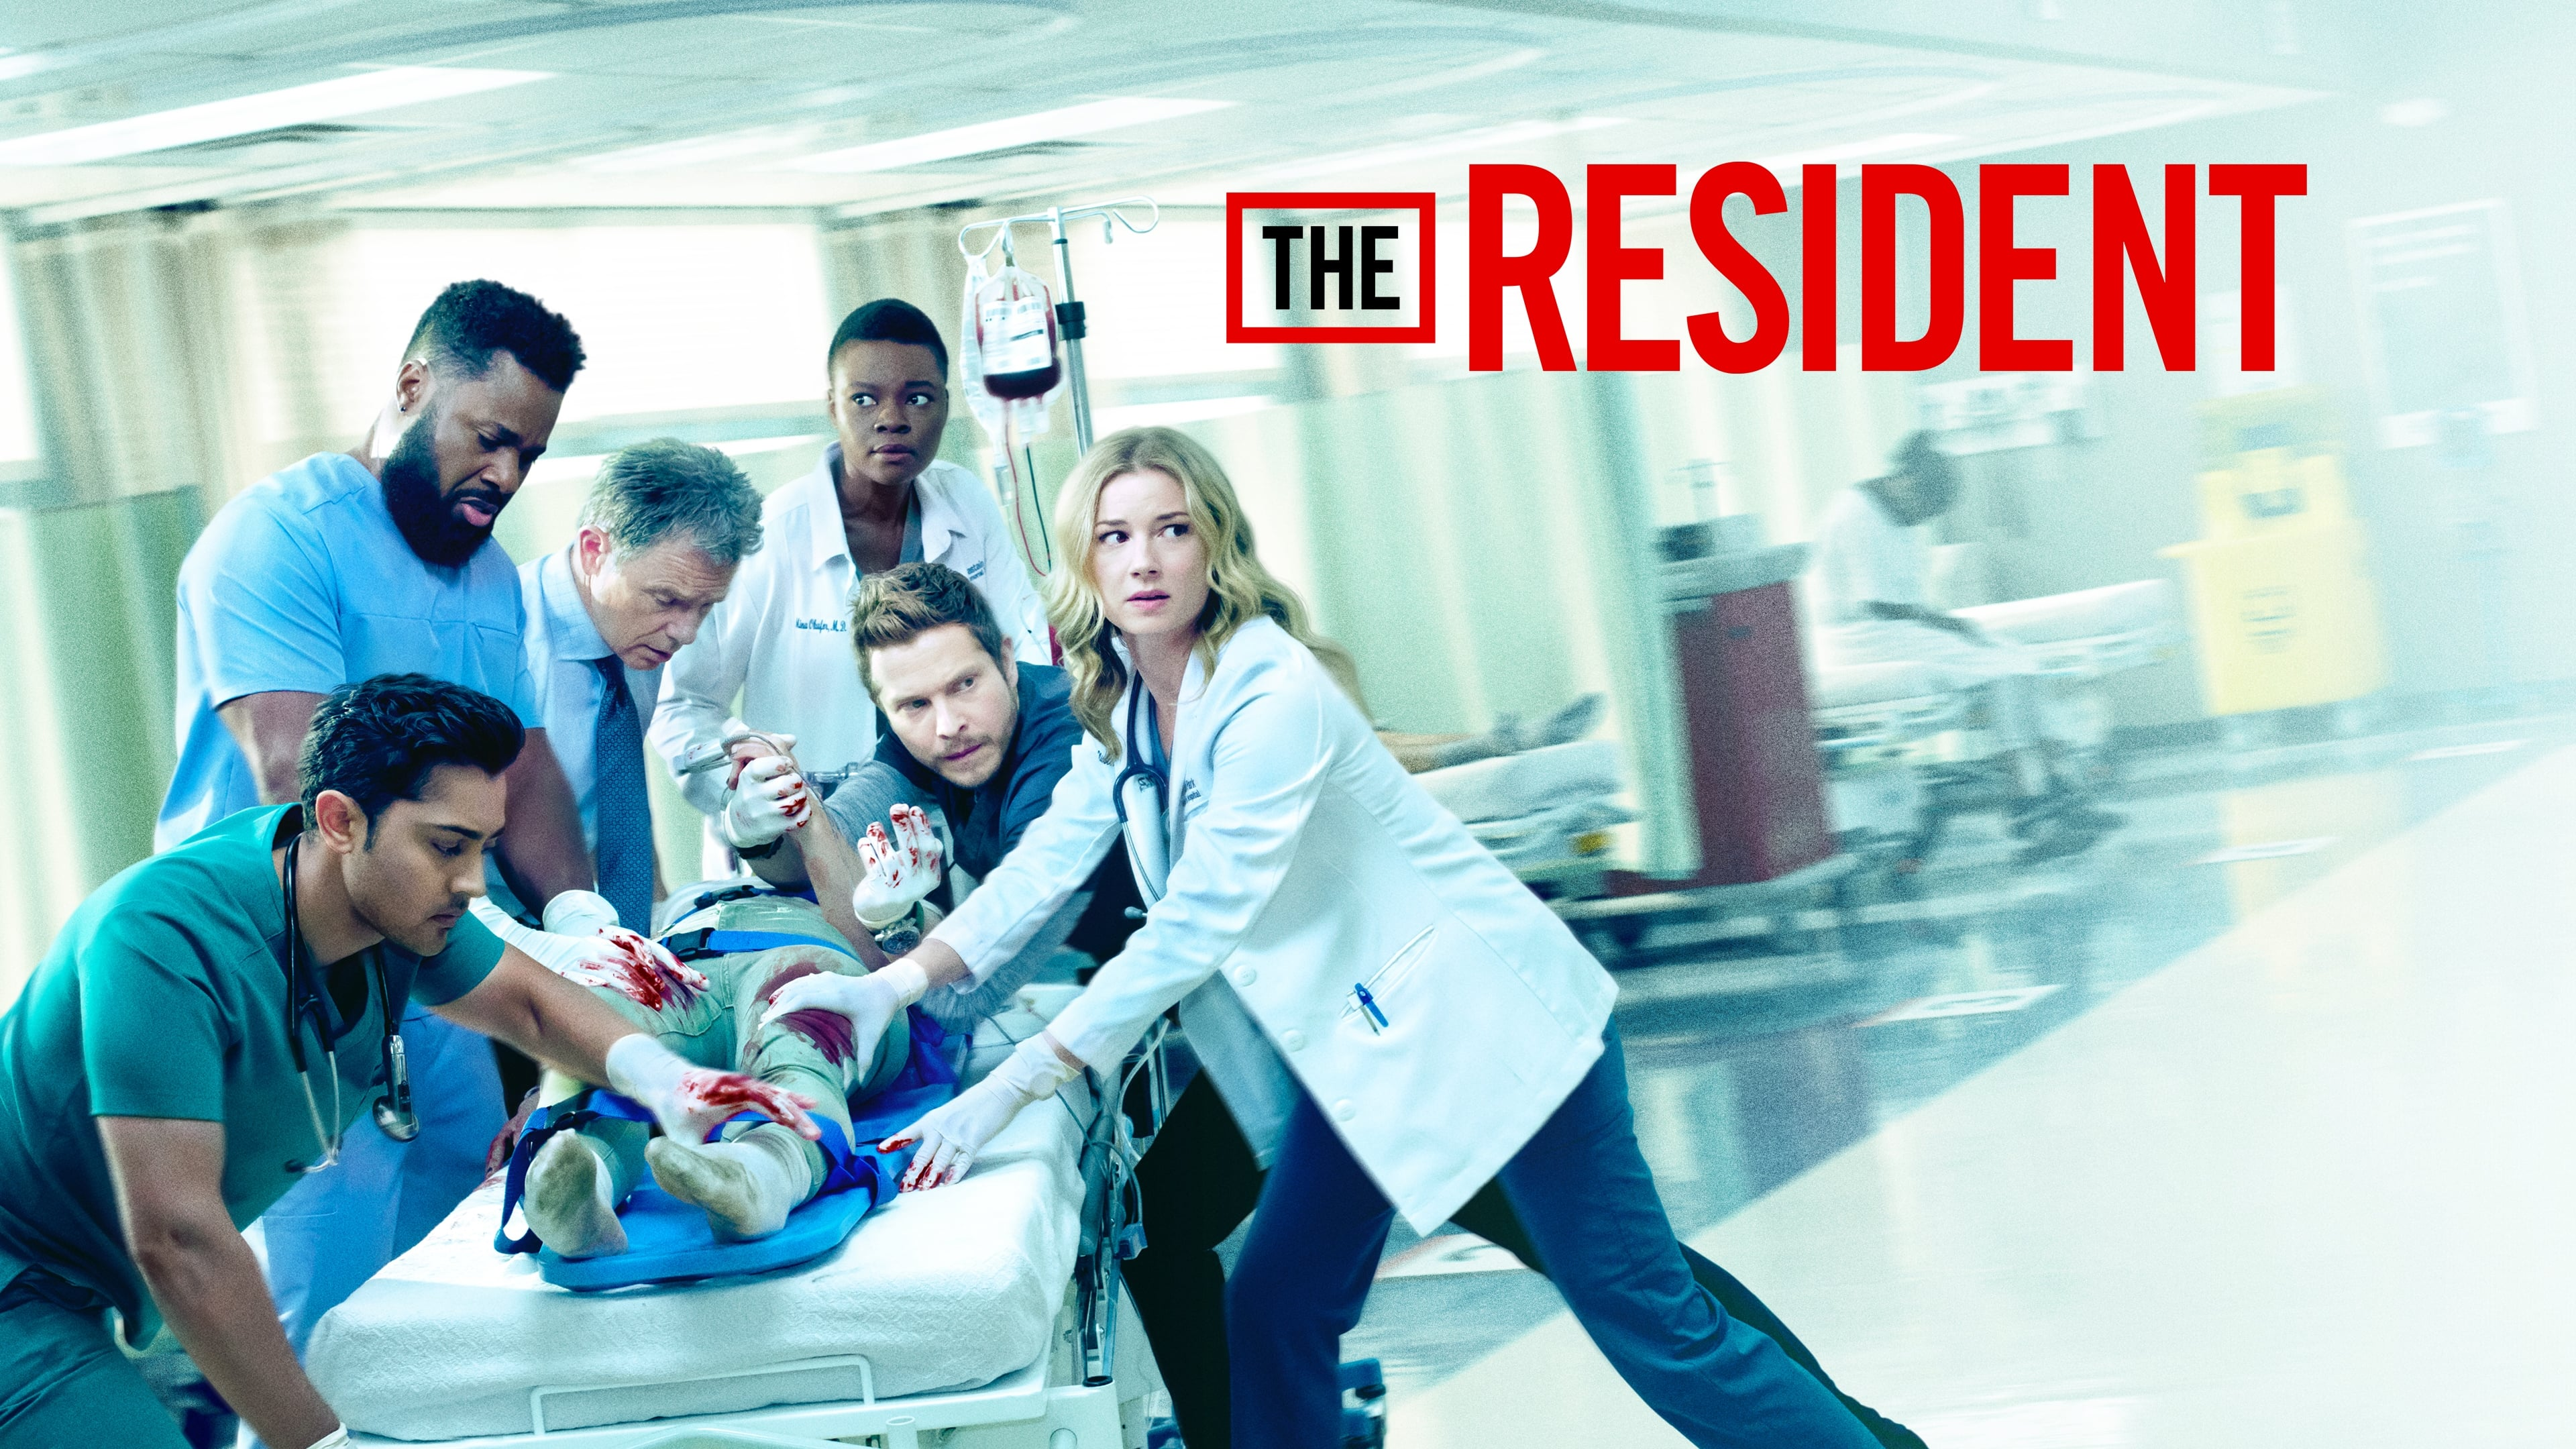 The Resident - Season 3 Episode 2